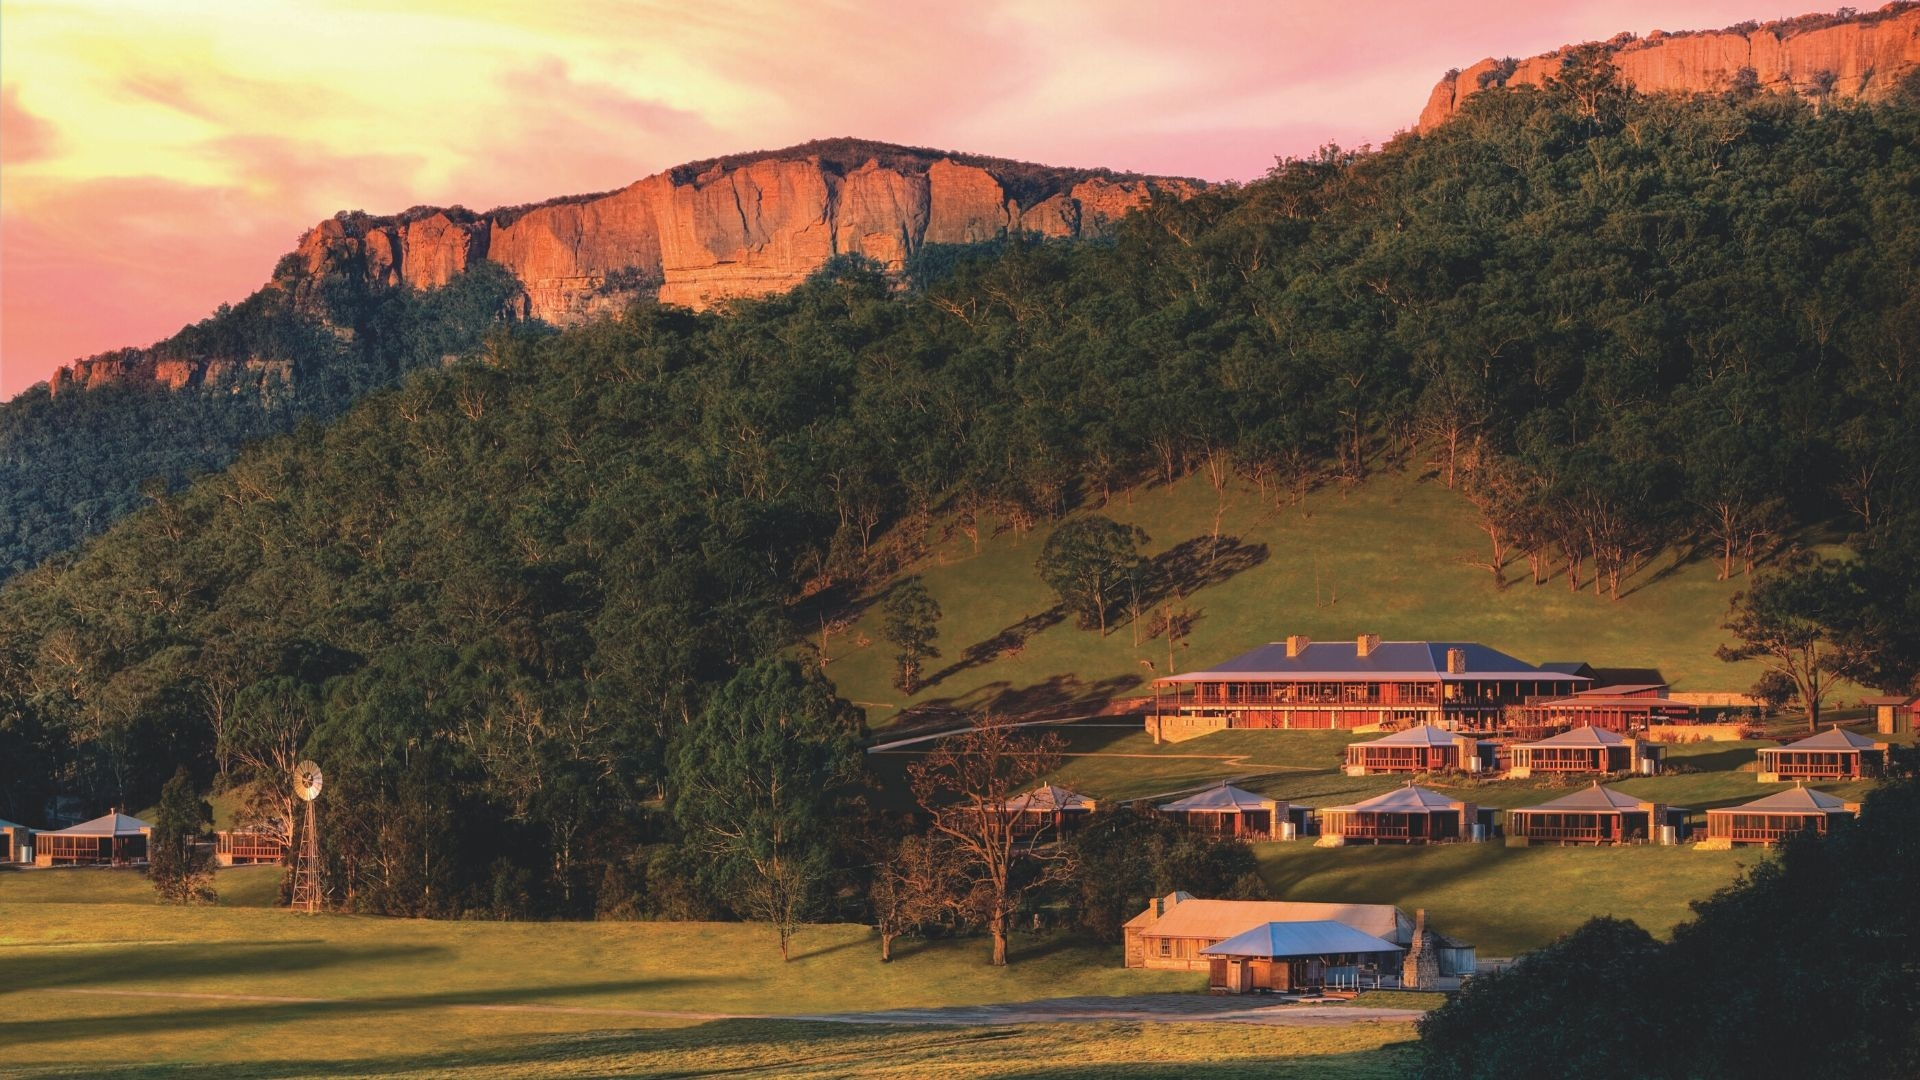 The Escape | Emirates One&Only Wolgan Valley Is The Remote Australian Hideaway Of Your Honeymoon Dreams